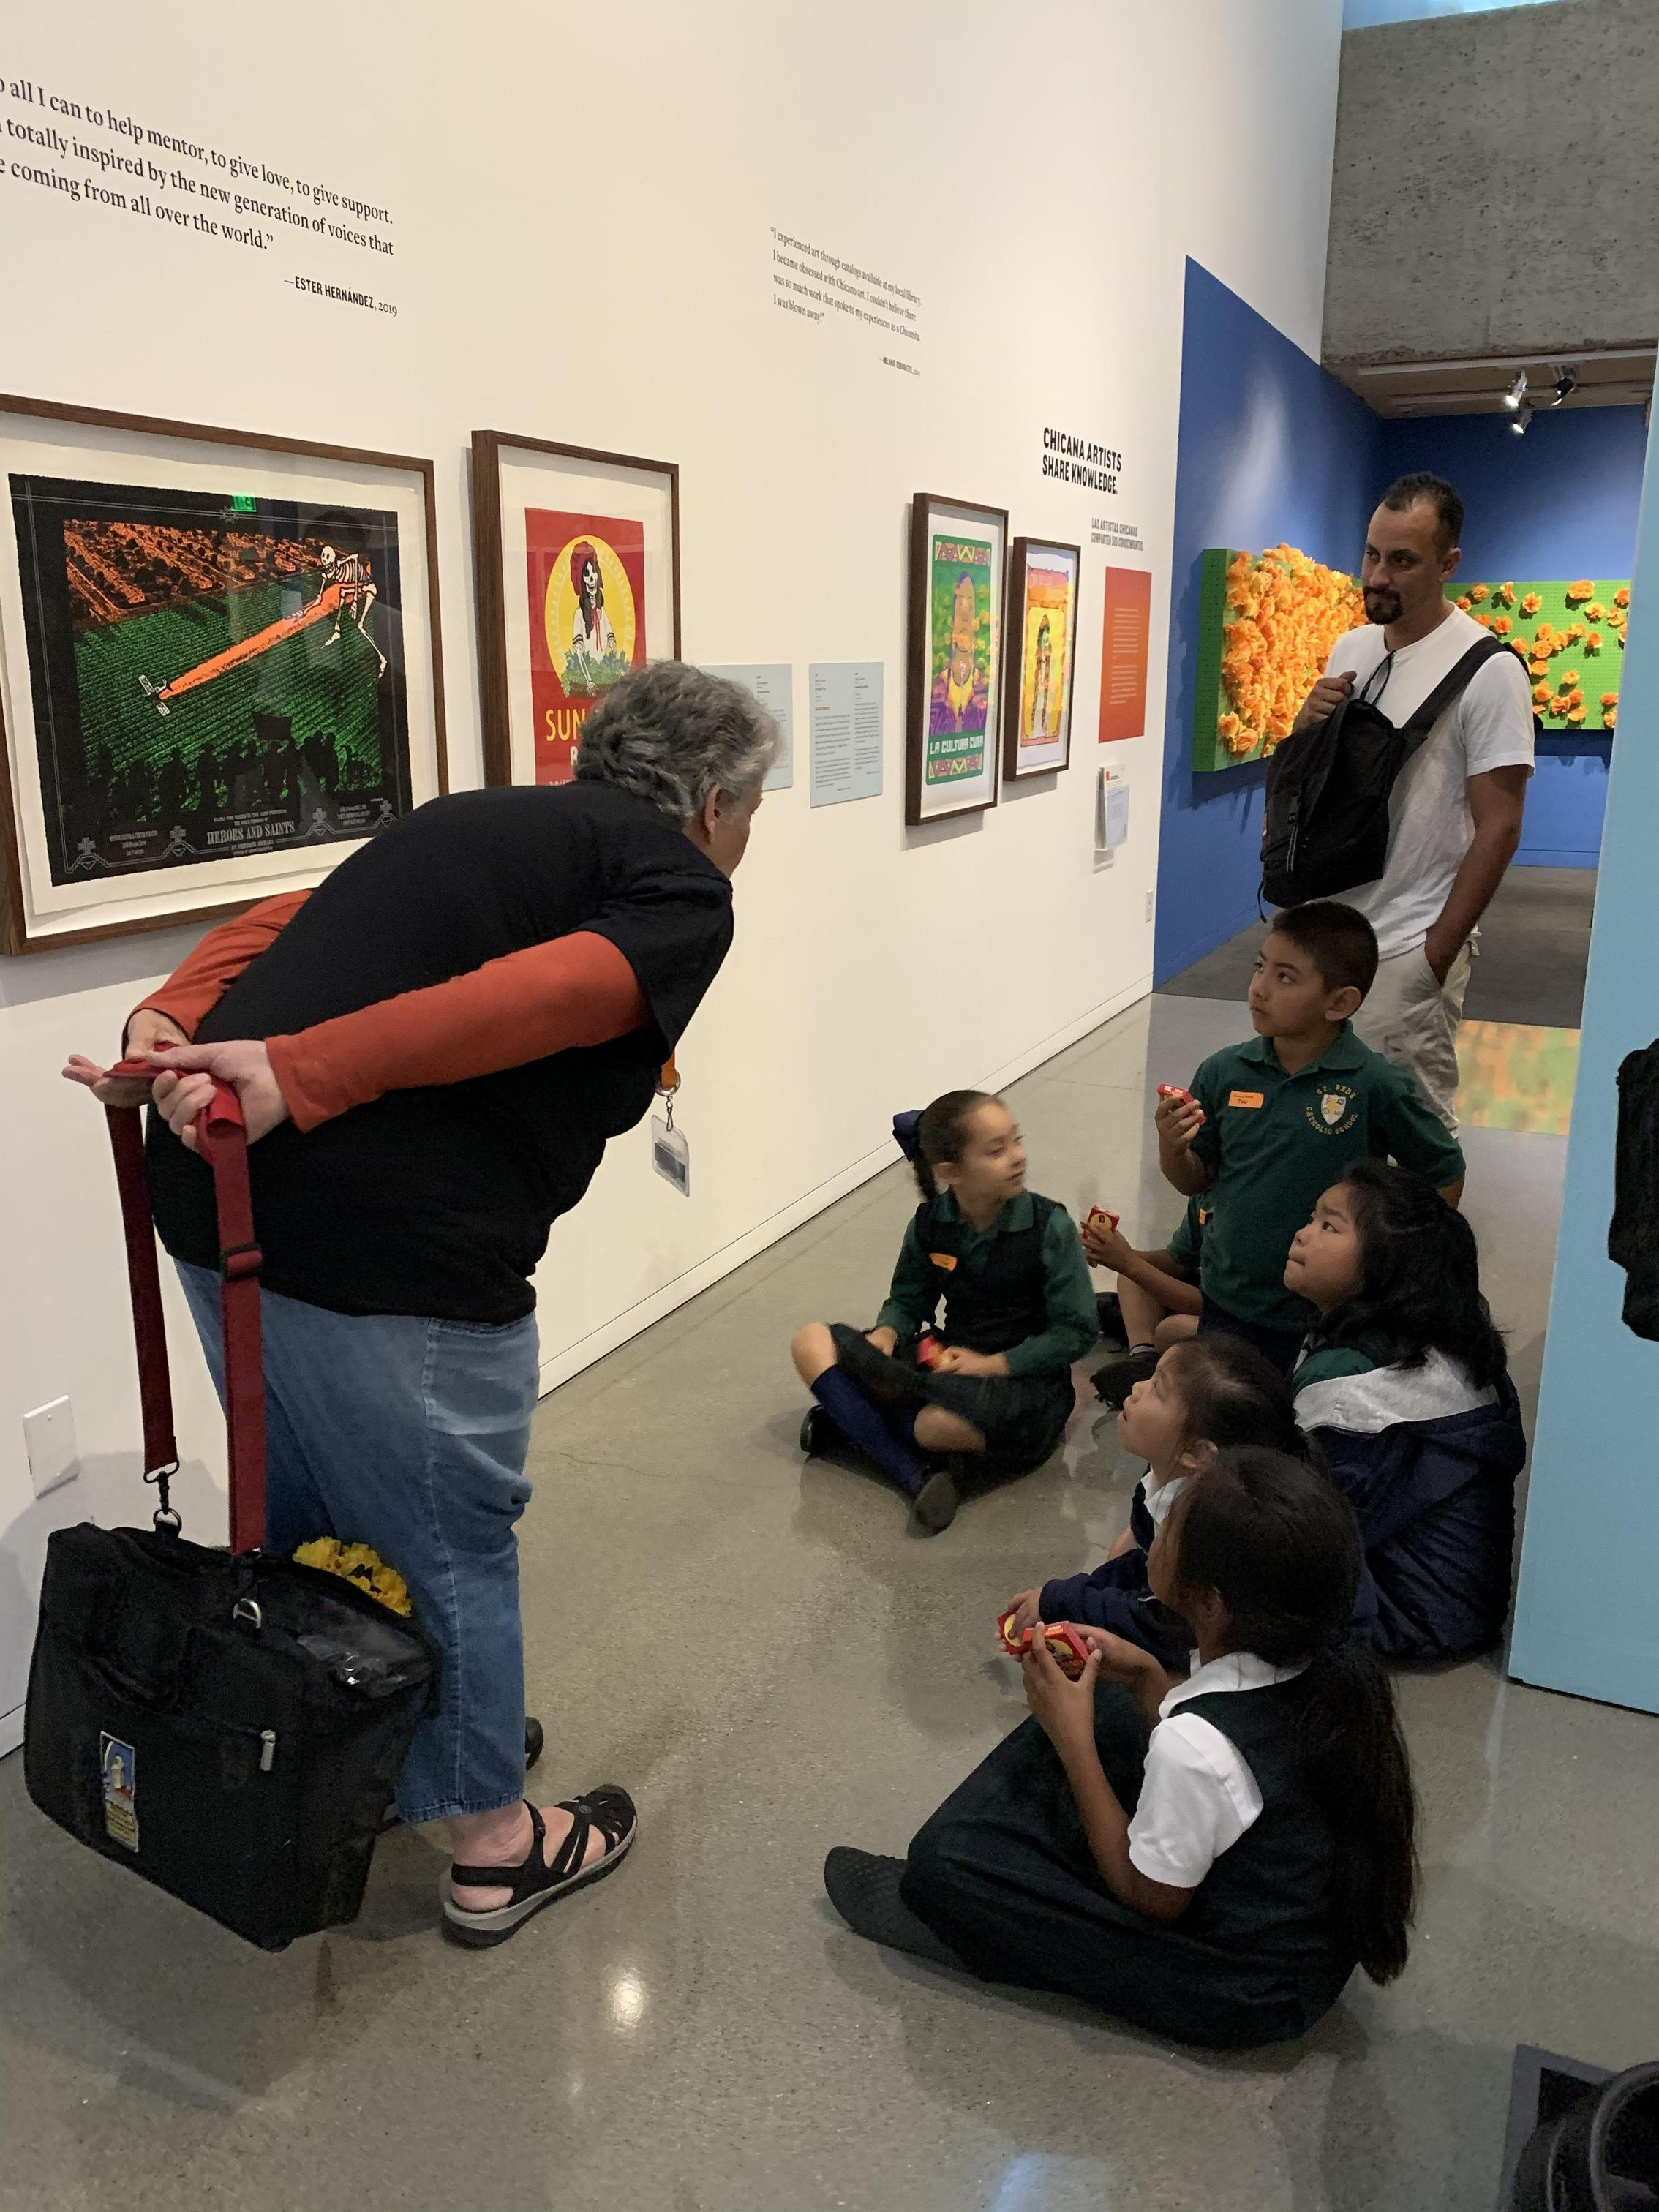 A fun field trip to the Oakland Museum.